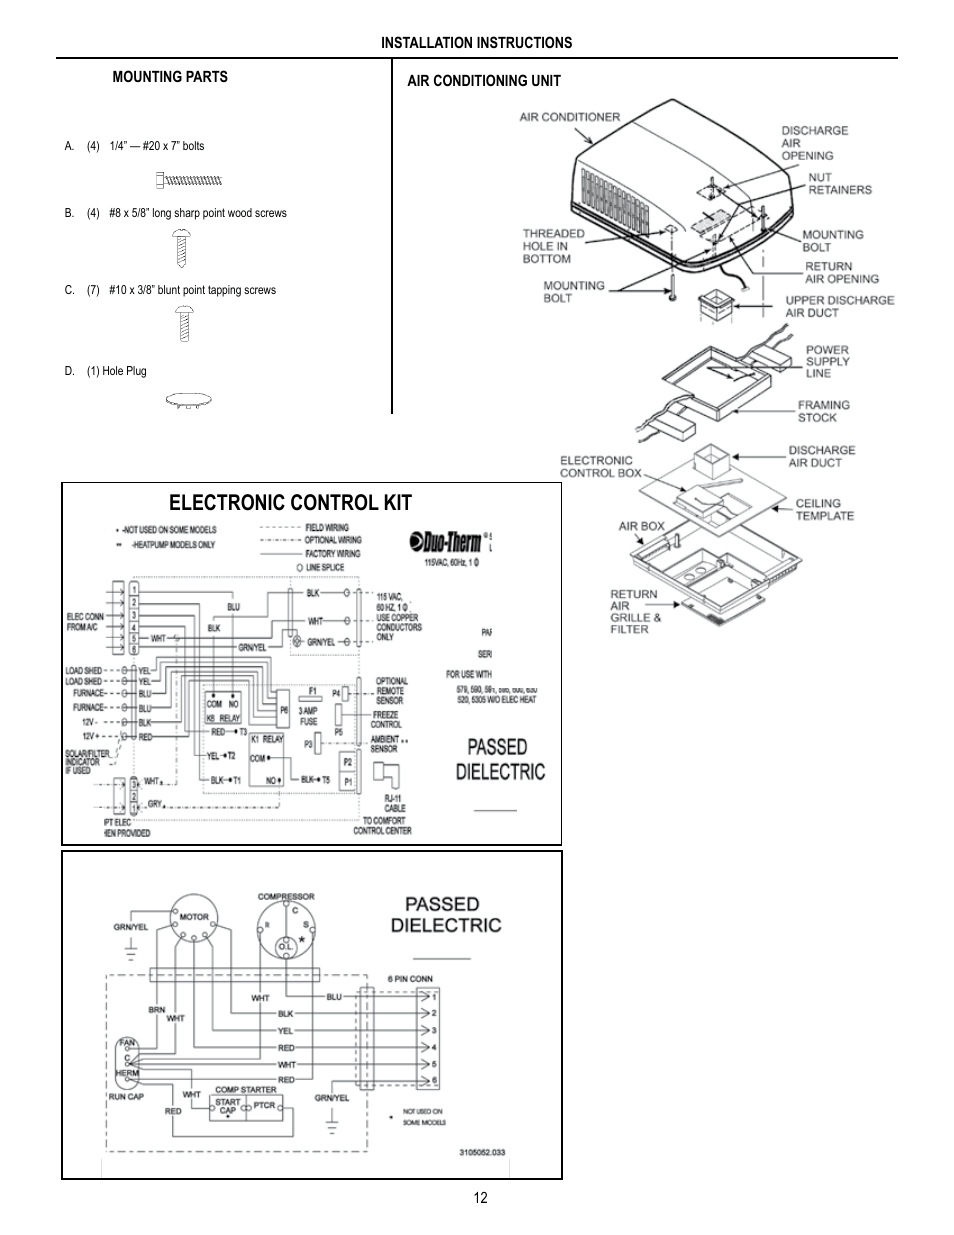 hight resolution of electronic control kit unit field wiring diagram dometic brisk air rv thermostat wiring diagram dometic brisk air wiring diagram